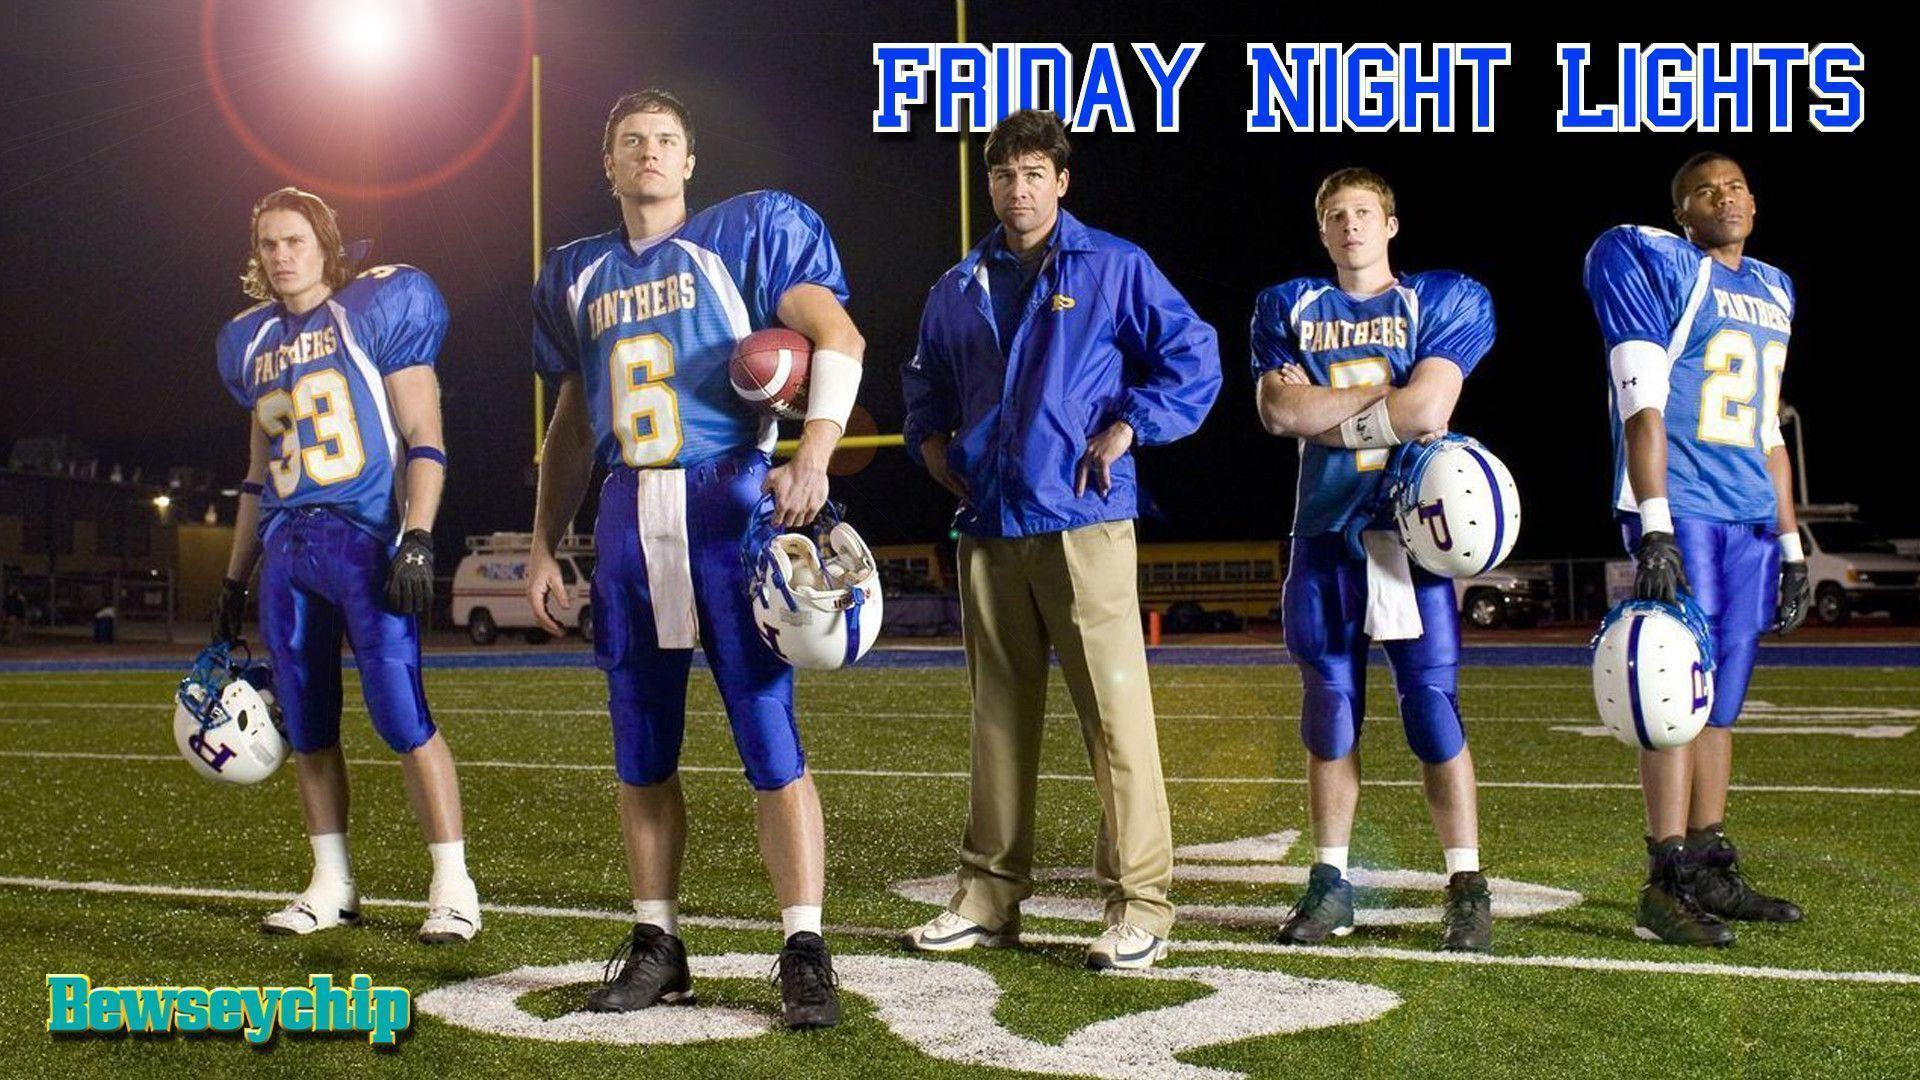 friday night lights popular culture Small town values  perhaps friday night lights is widely adored because we see glimpses of our own life in the show high school pep rallies, lifelong friendship, small town football games, and tight-knit families are portrayed on the big screen, reminding us all that growing up in the south is truly special.